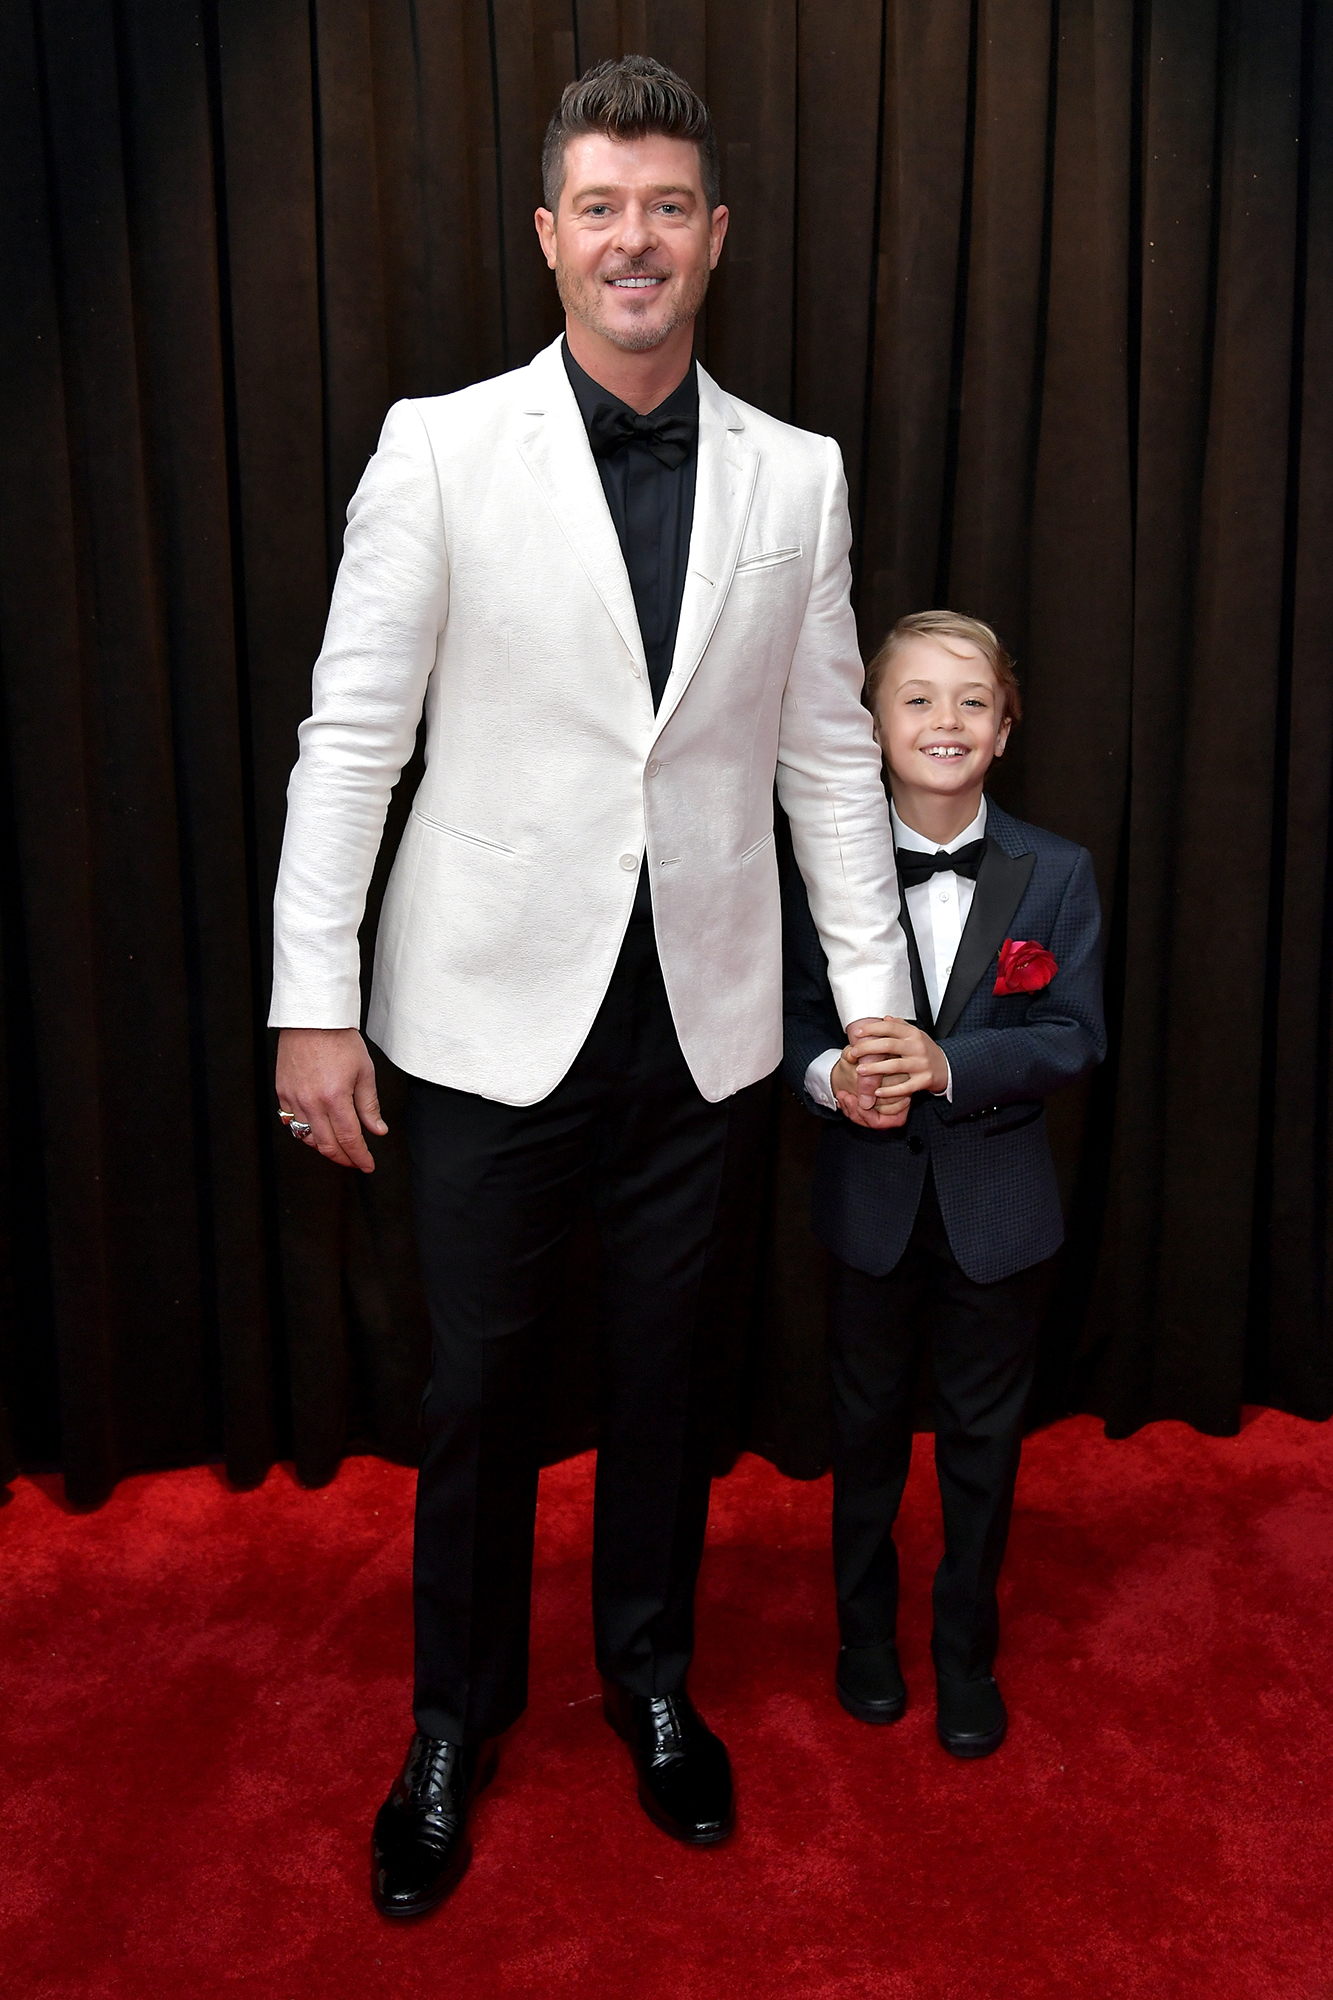 """Grammys 2019: Shawn Mendes, Miley Cyrus and More Stars Who Brought Family Members as Dates - The """"Blurred Lines"""" crooner walked the carpet with son Julian, 8, whom he shares with ex-wife Paula Patton."""